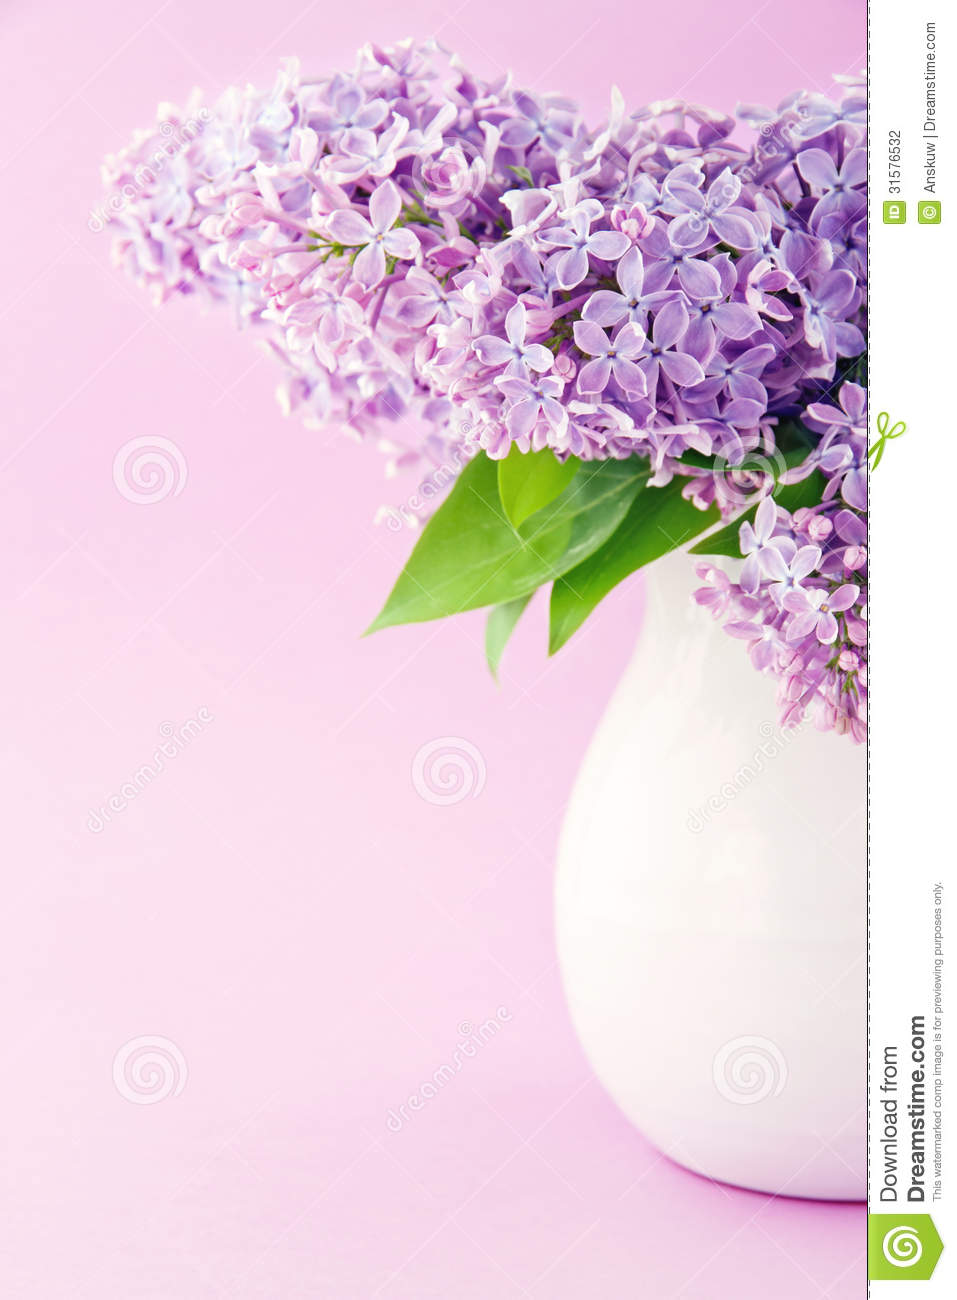 White vase with a bouquet of purple lilac spring flowers.